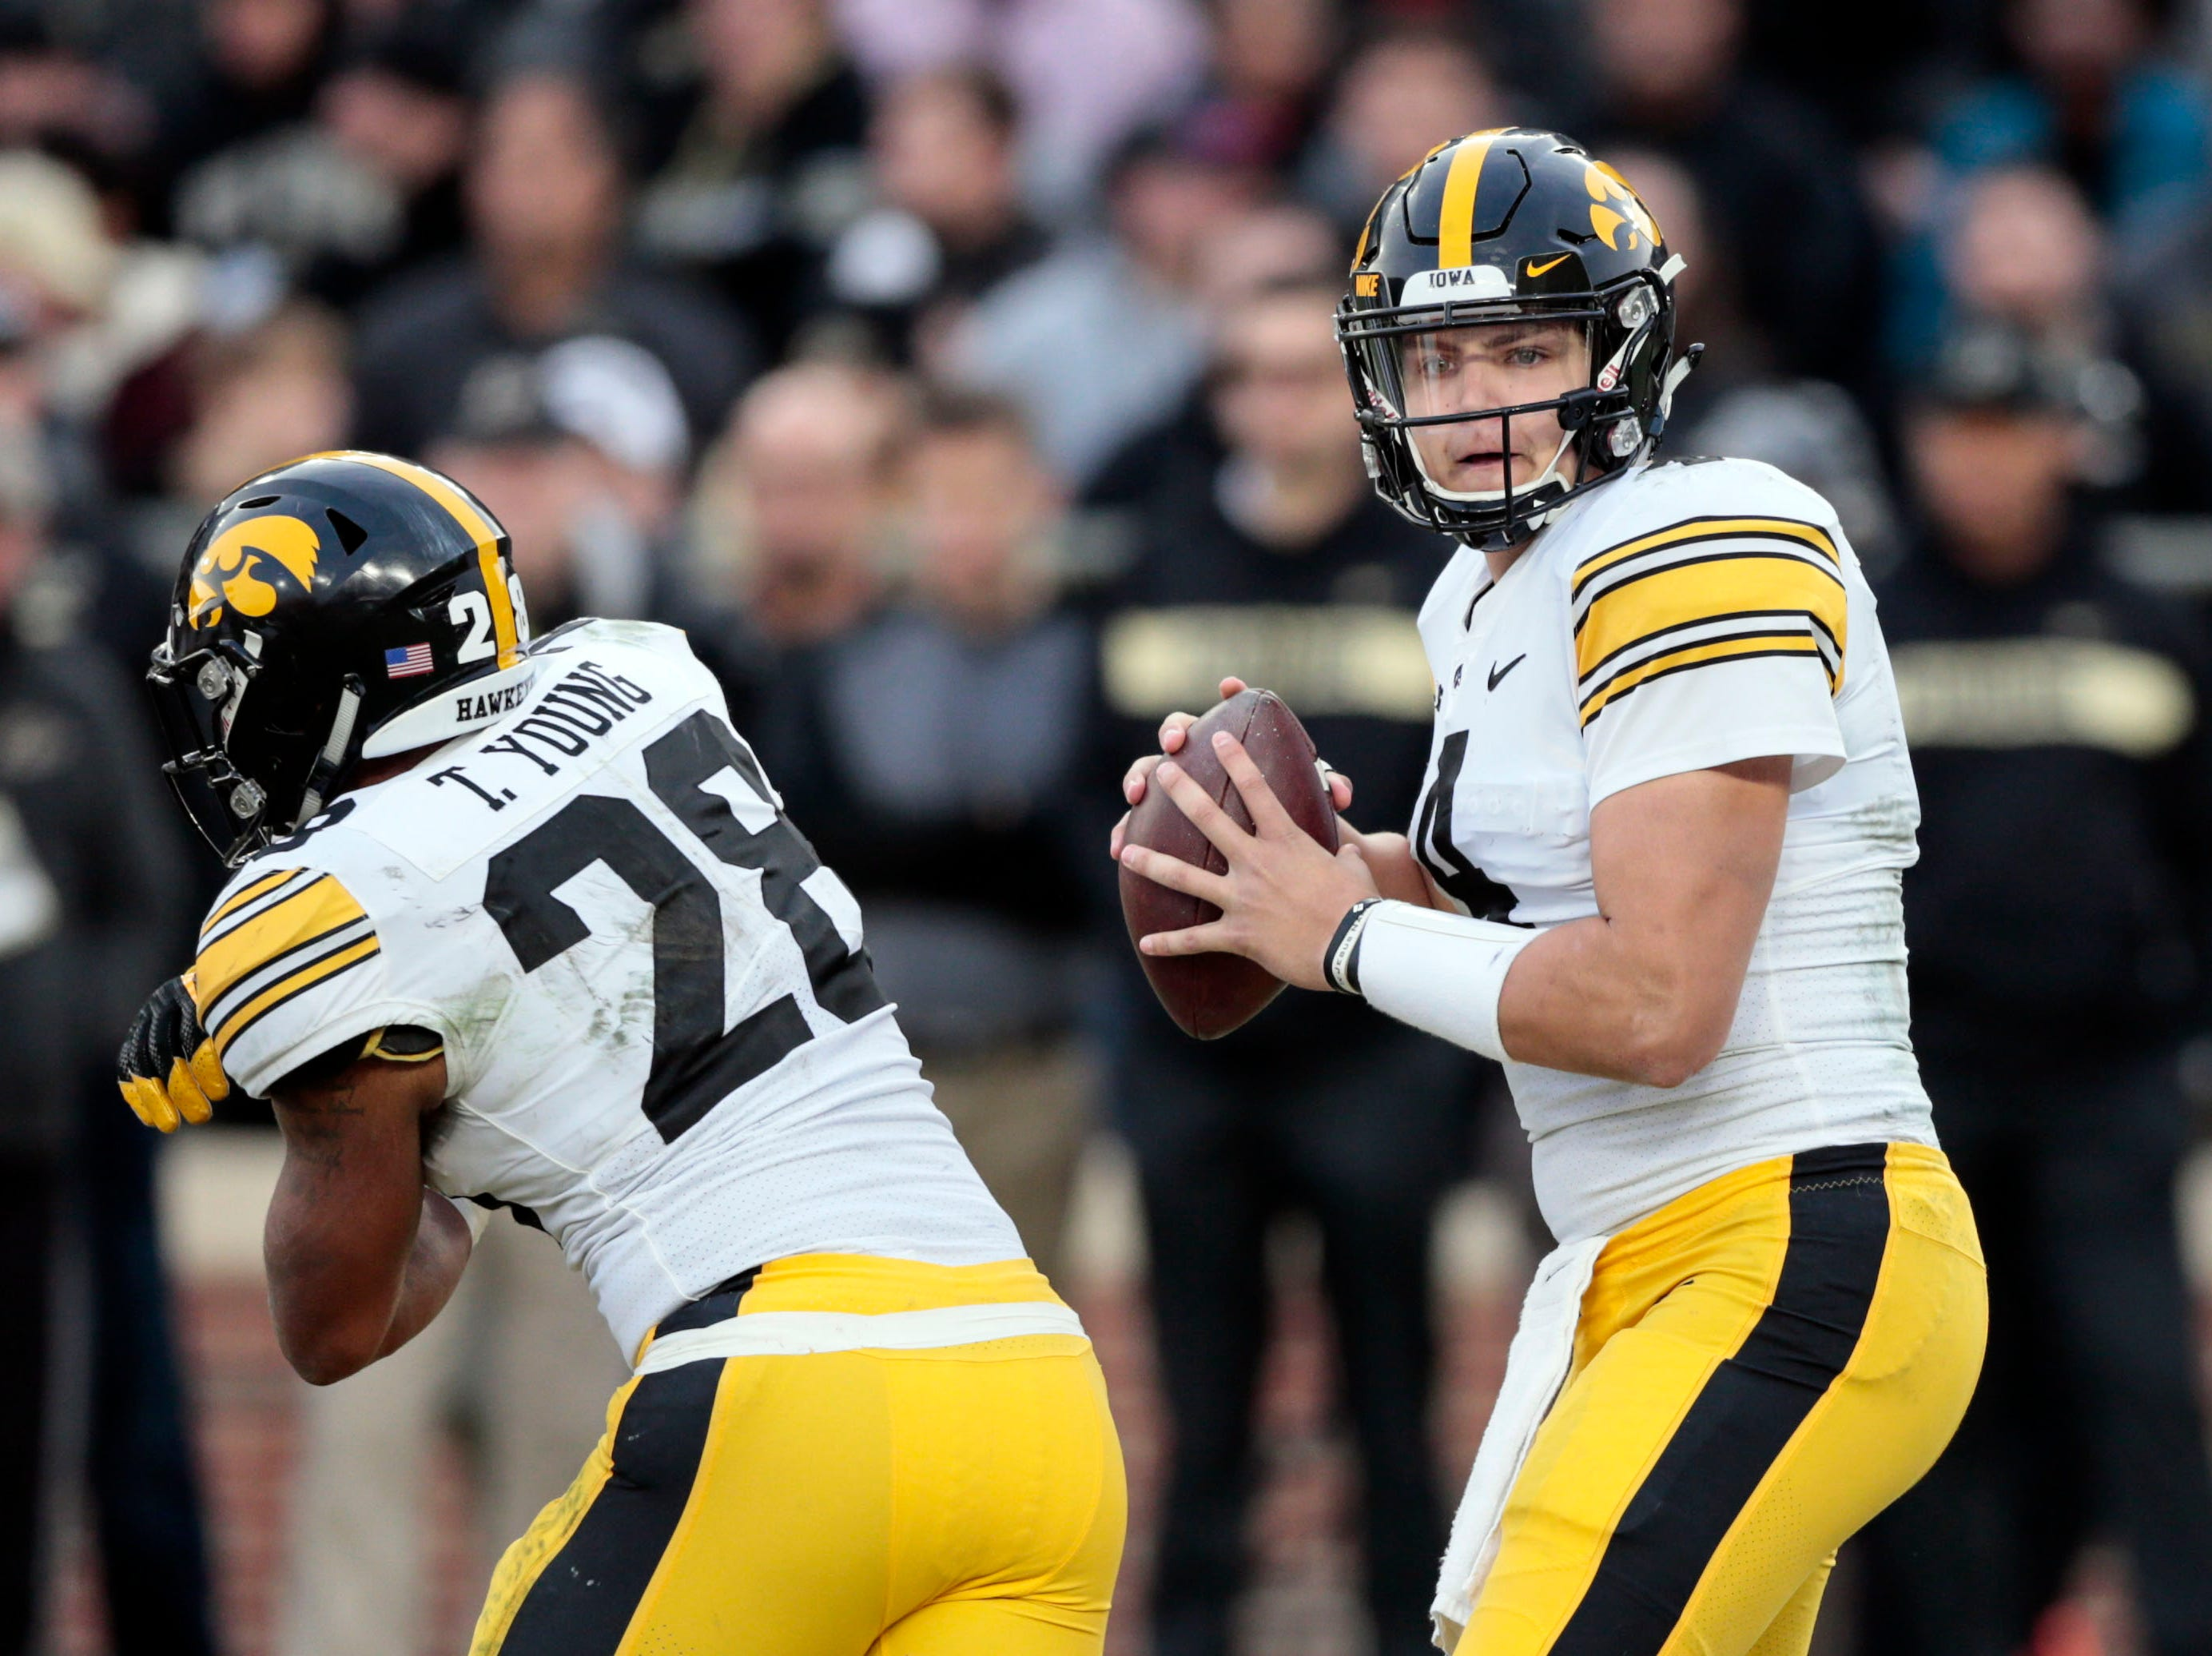 Iowa quarterback Nate Stanley (4) drops back behind running back Toren Young (28) while playing against Purdue in the second half of an NCAA college football game in West Lafayette, Ind., Saturday, Nov. 3, 2018.